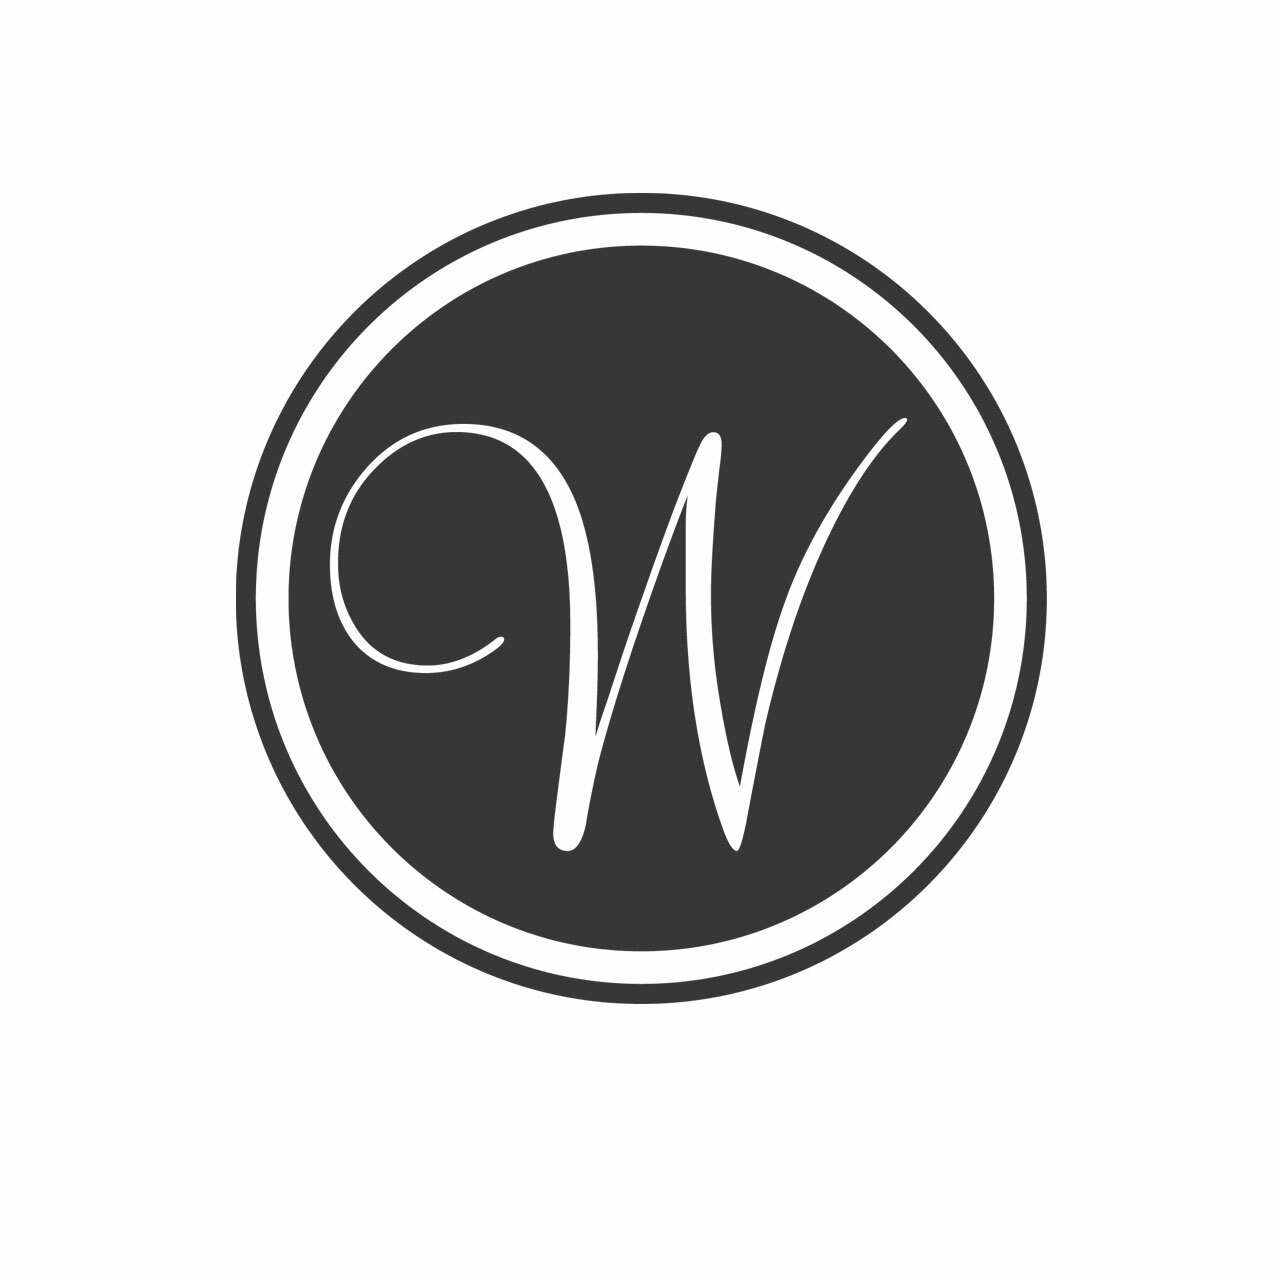 Single letter circular monogram with the letter W in charcoal grey